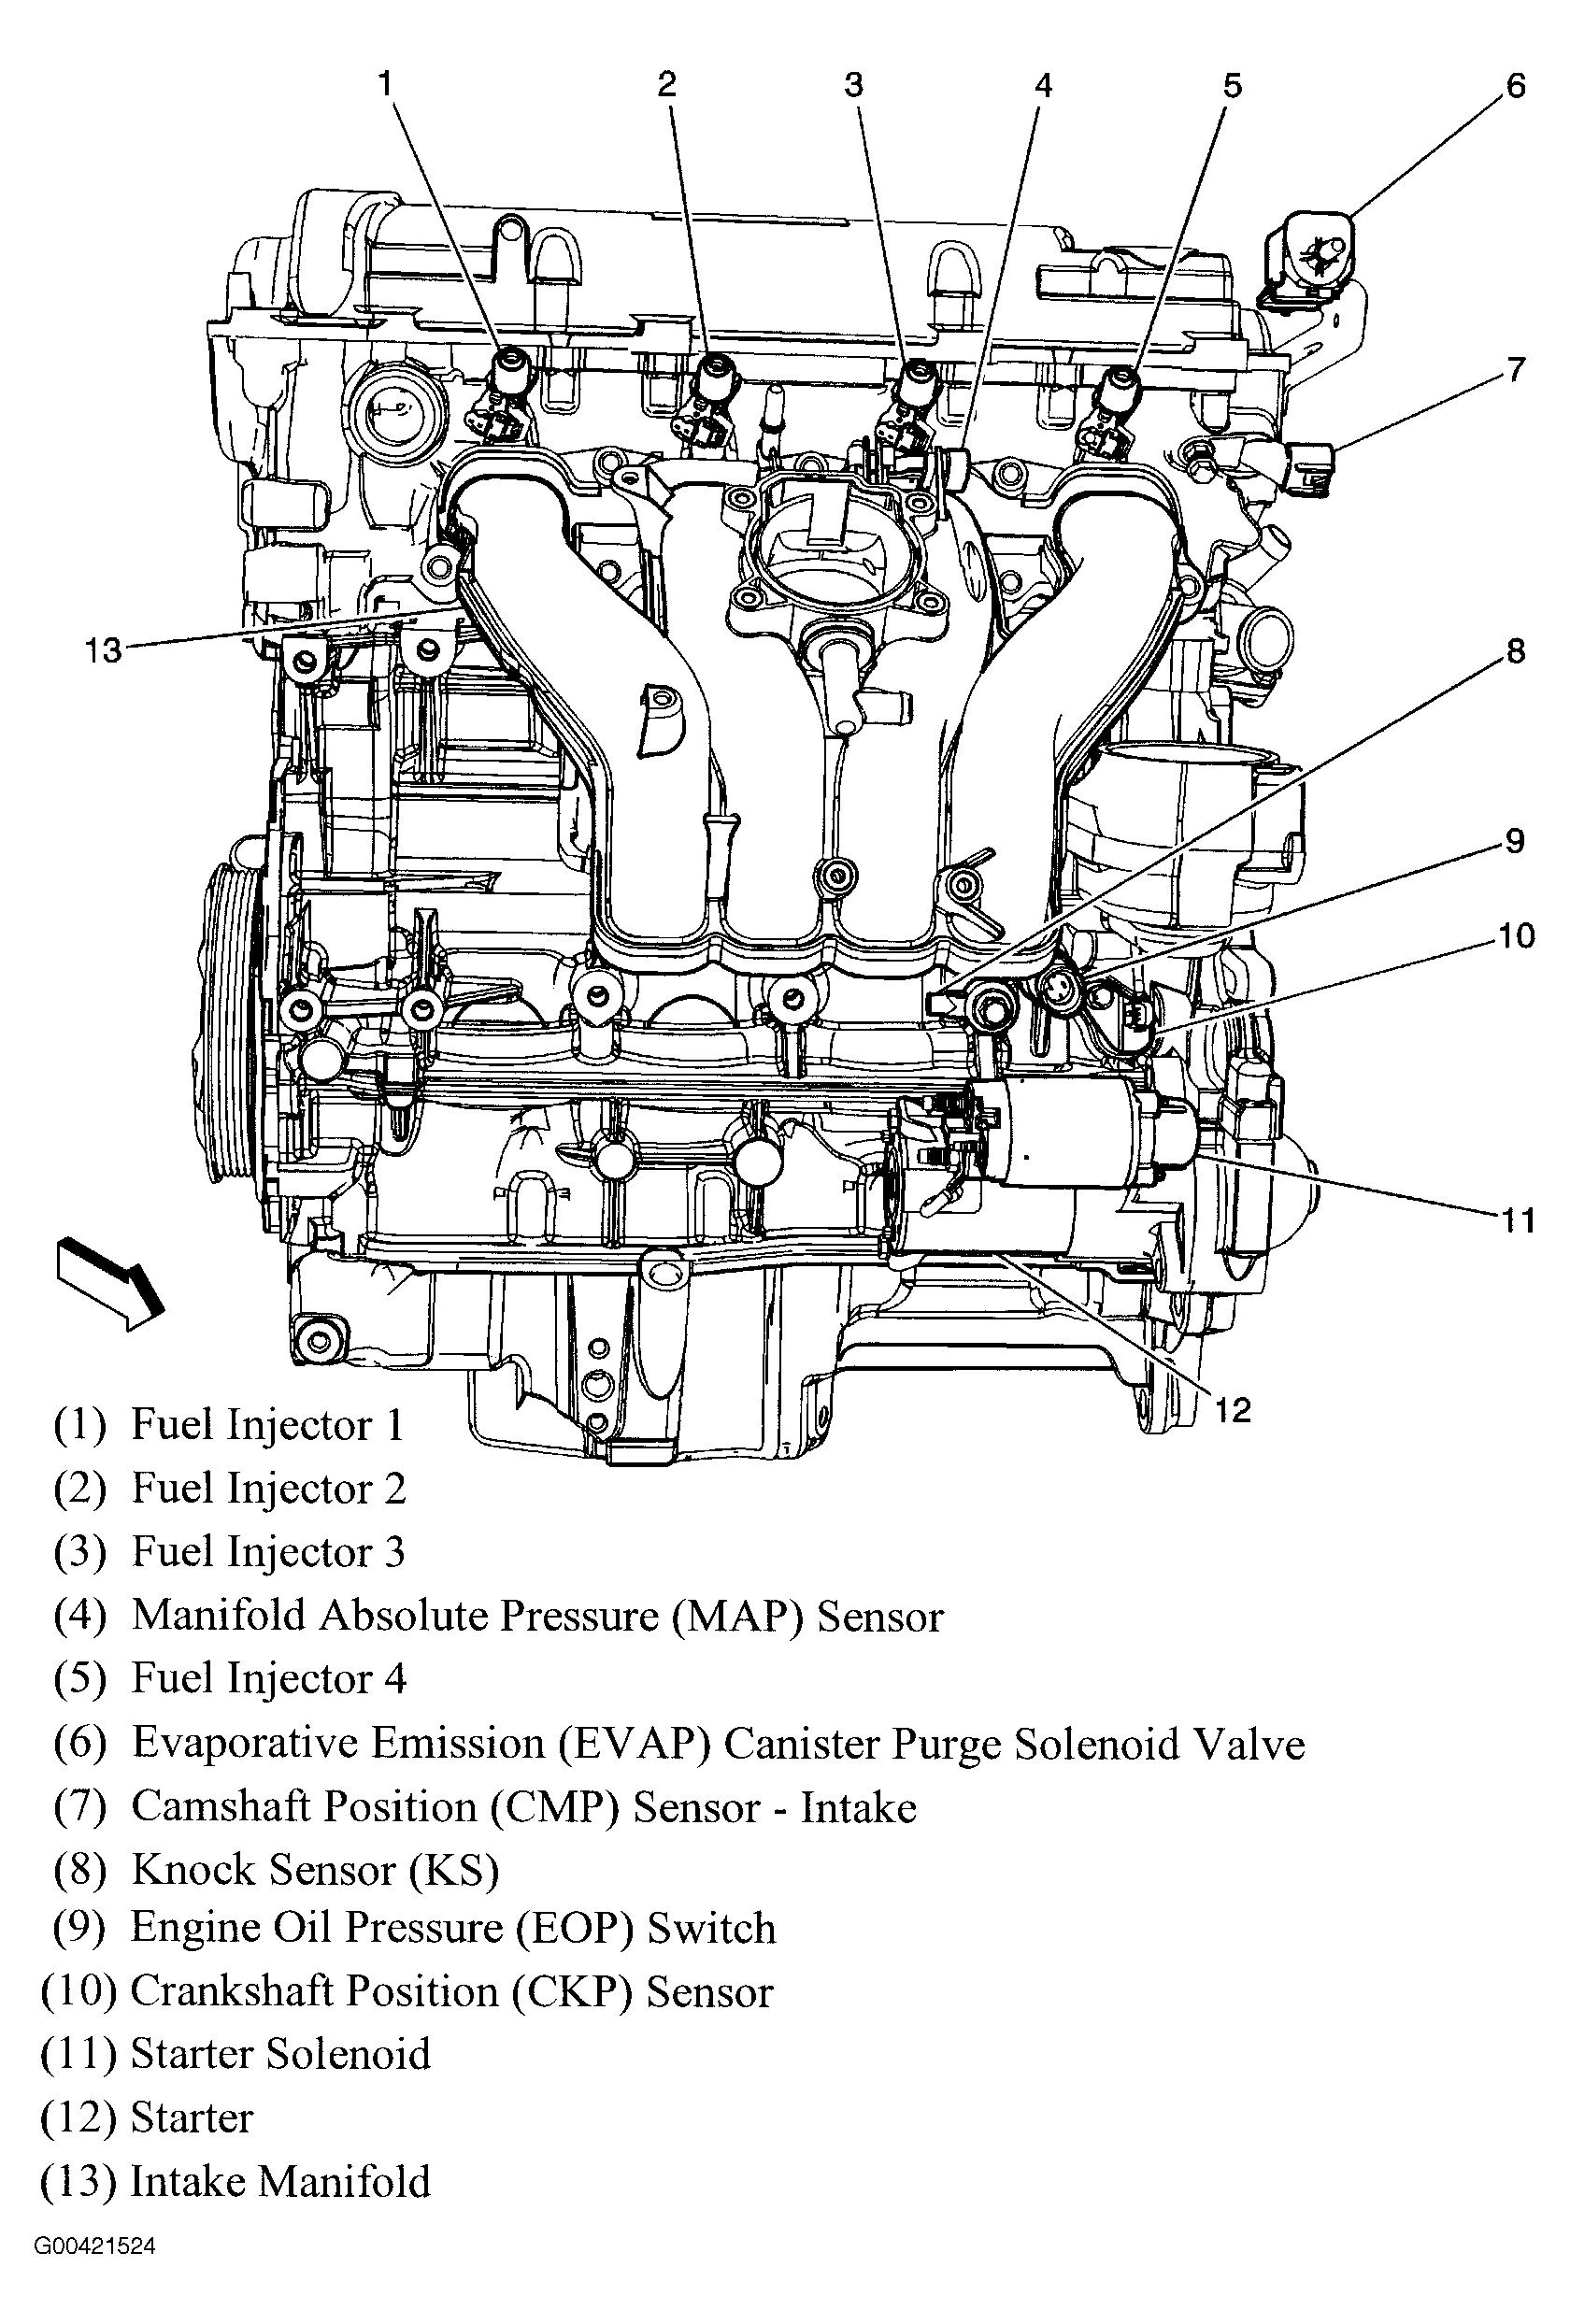 Chevy Aveo Schematics - Wiring Diagram point skip-answer -  skip-answer.lauragiustibijoux.it | 2004 Chevy Aveo Engine Diagram |  | Laura Giusti Bijoux